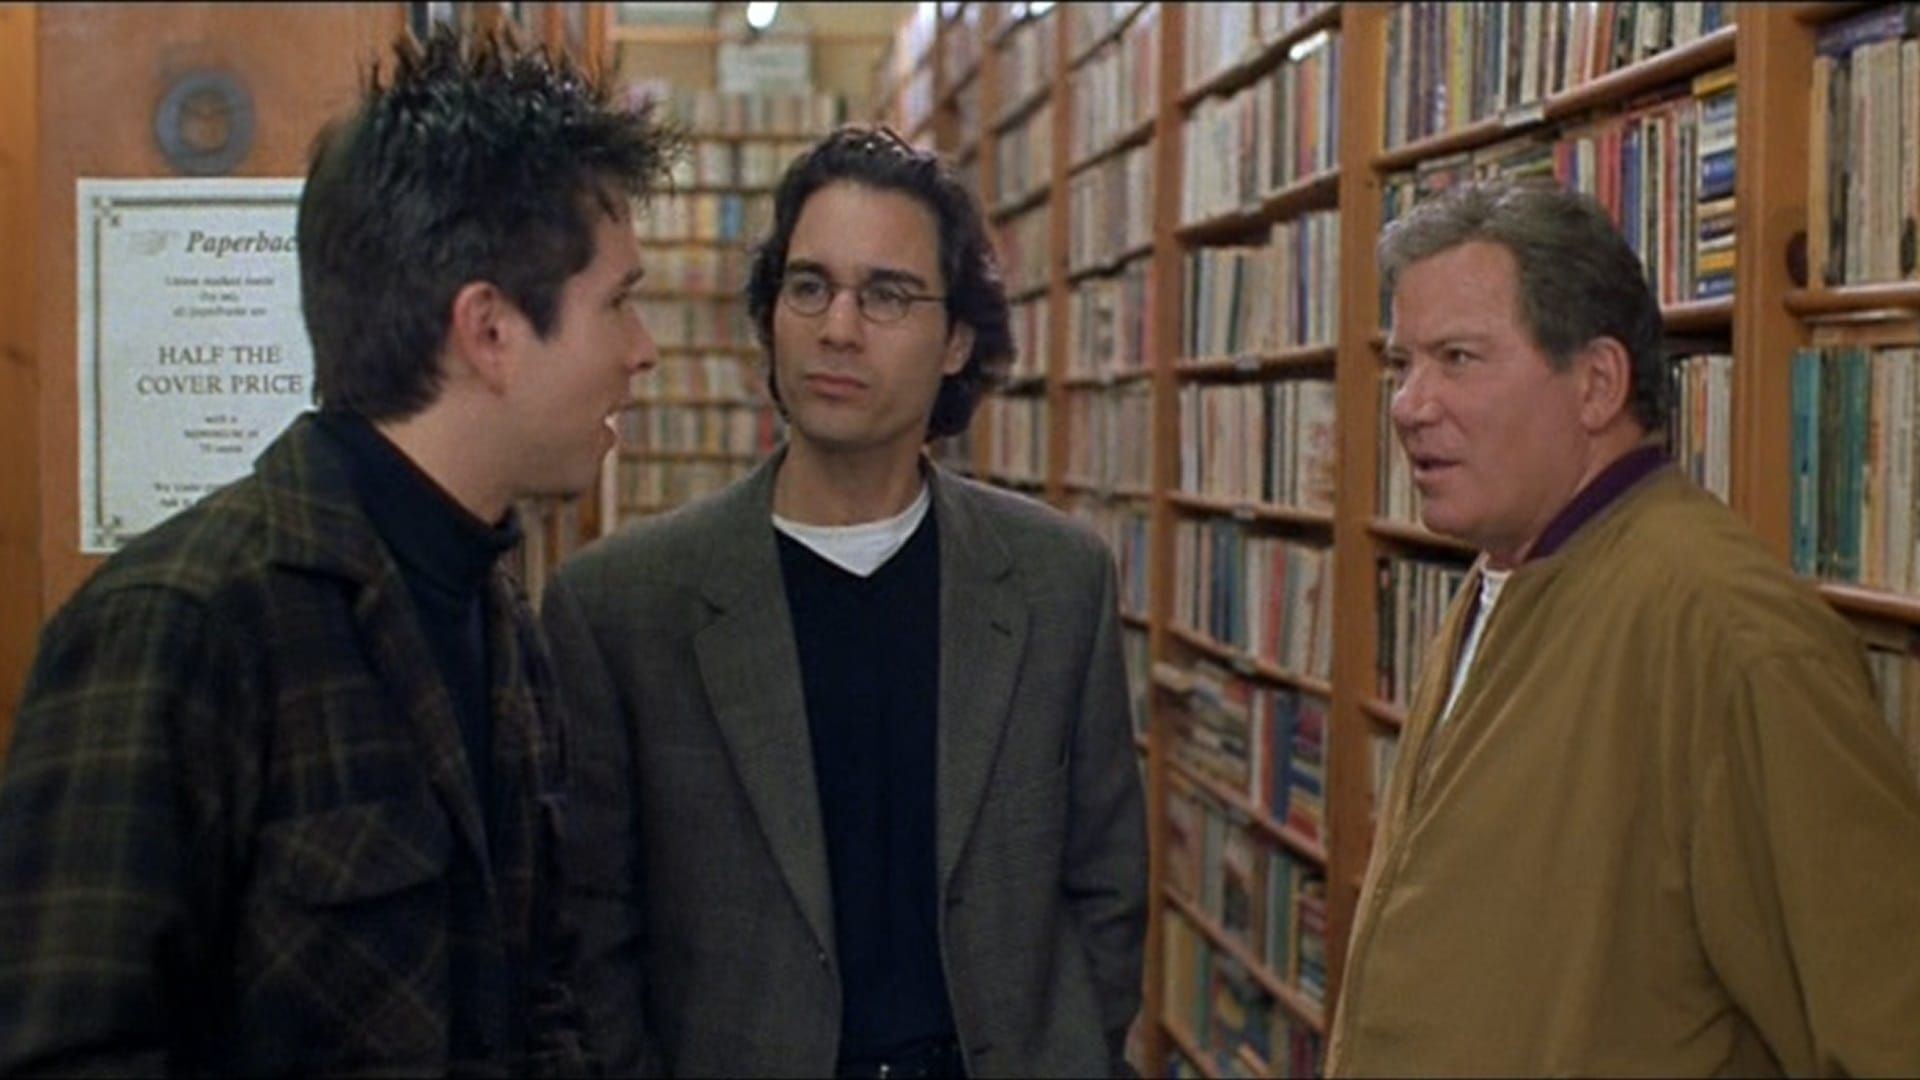 (l to r) Fans Eric McCormack and Rafer Wiegel meet their idol William Shatner in Free Enterprise (1998)